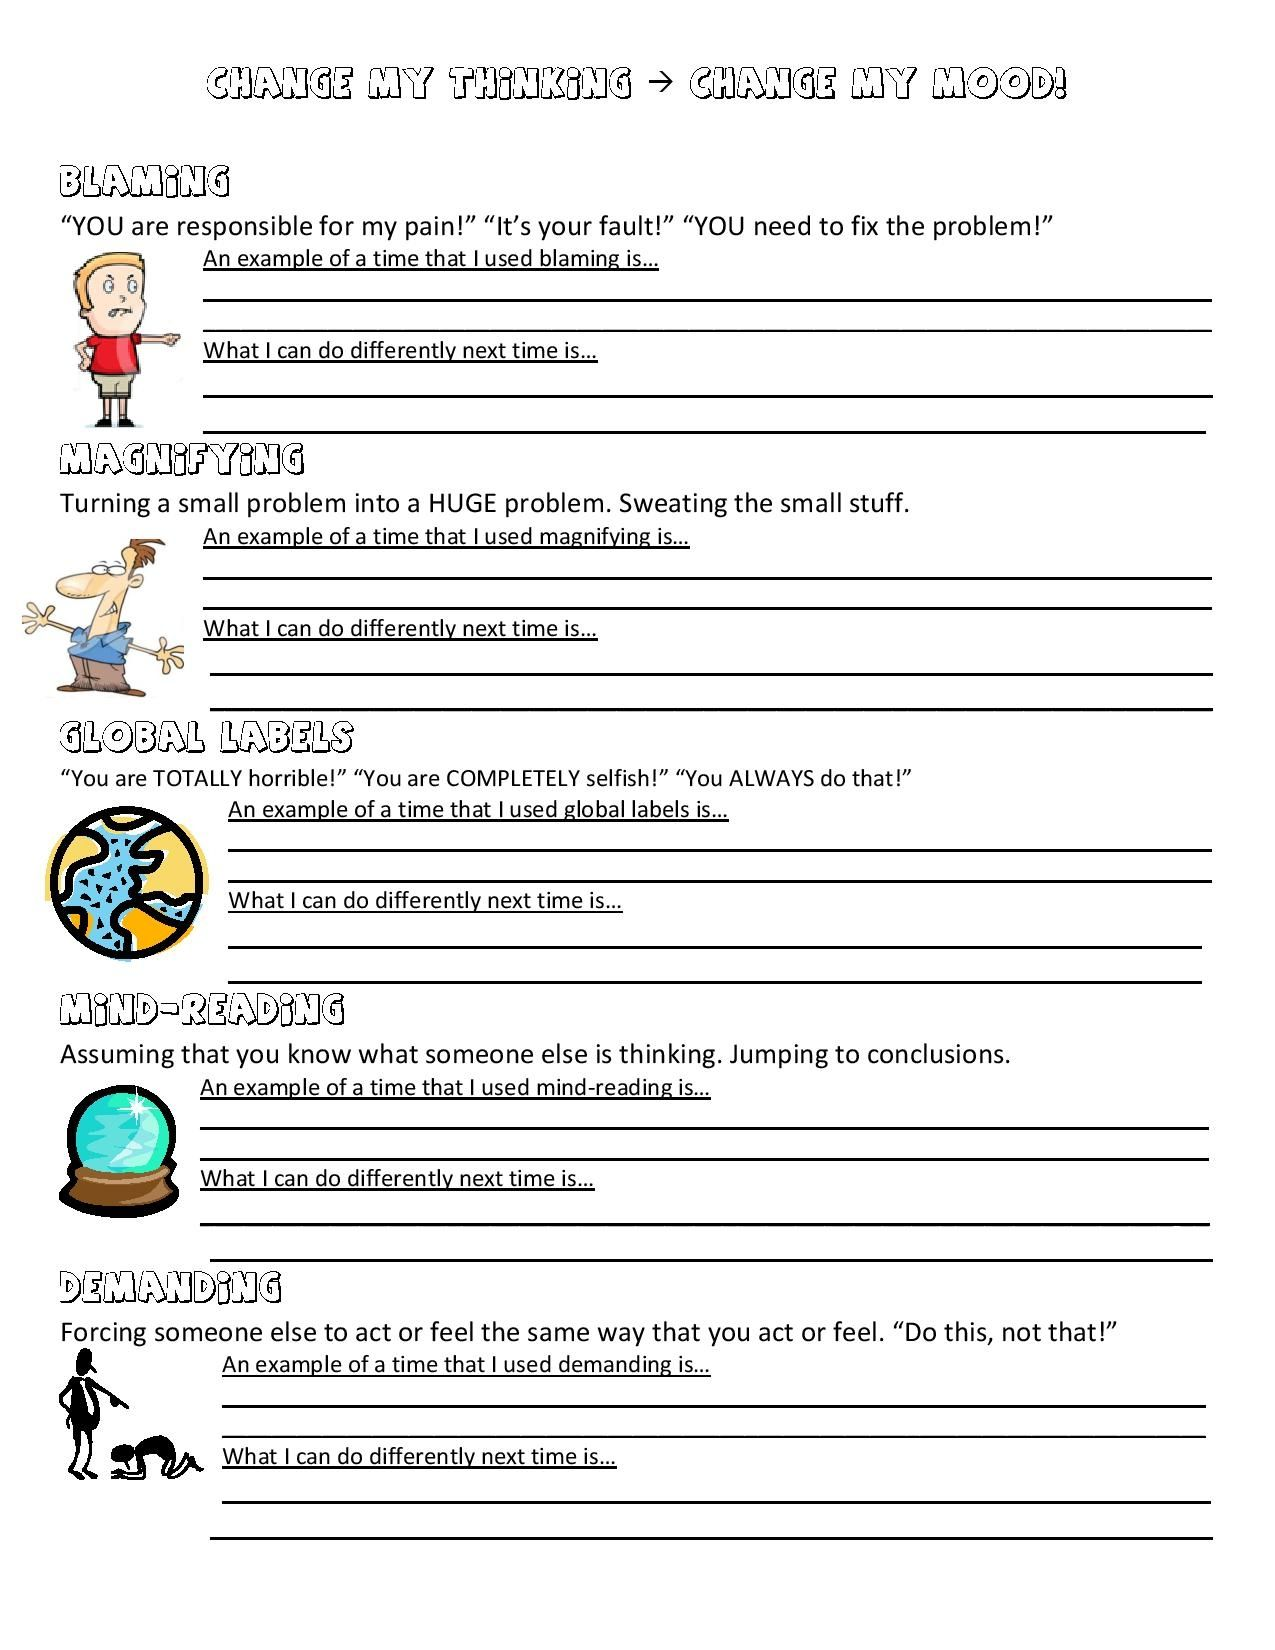 Worksheets Anger Management Worksheets Pdf anger management worksheet mental health experiences pinterest cbt for 3rd 8th grade students going to try it with my high school group